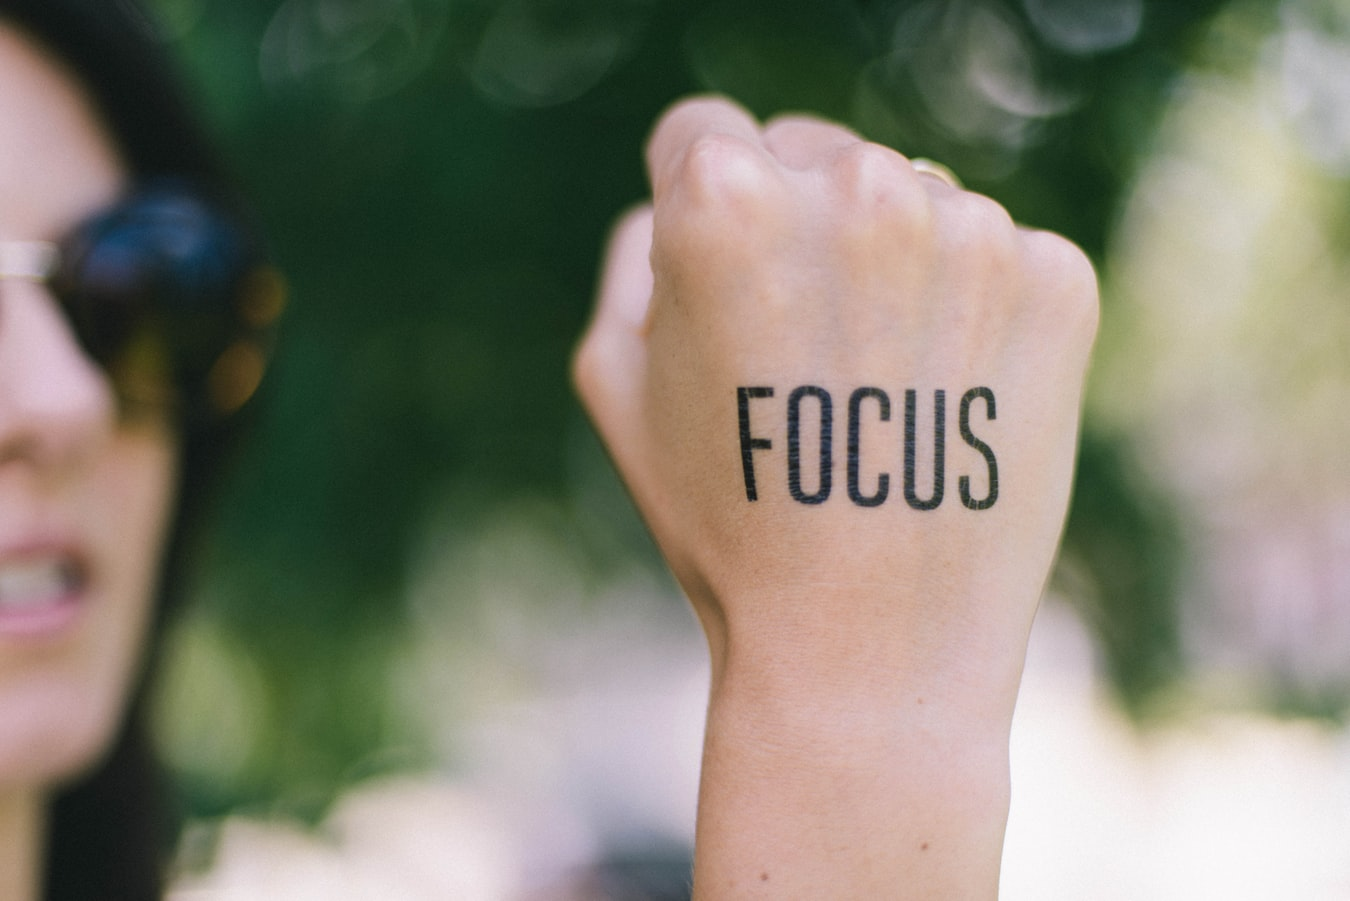 CBD Oil can help you focus